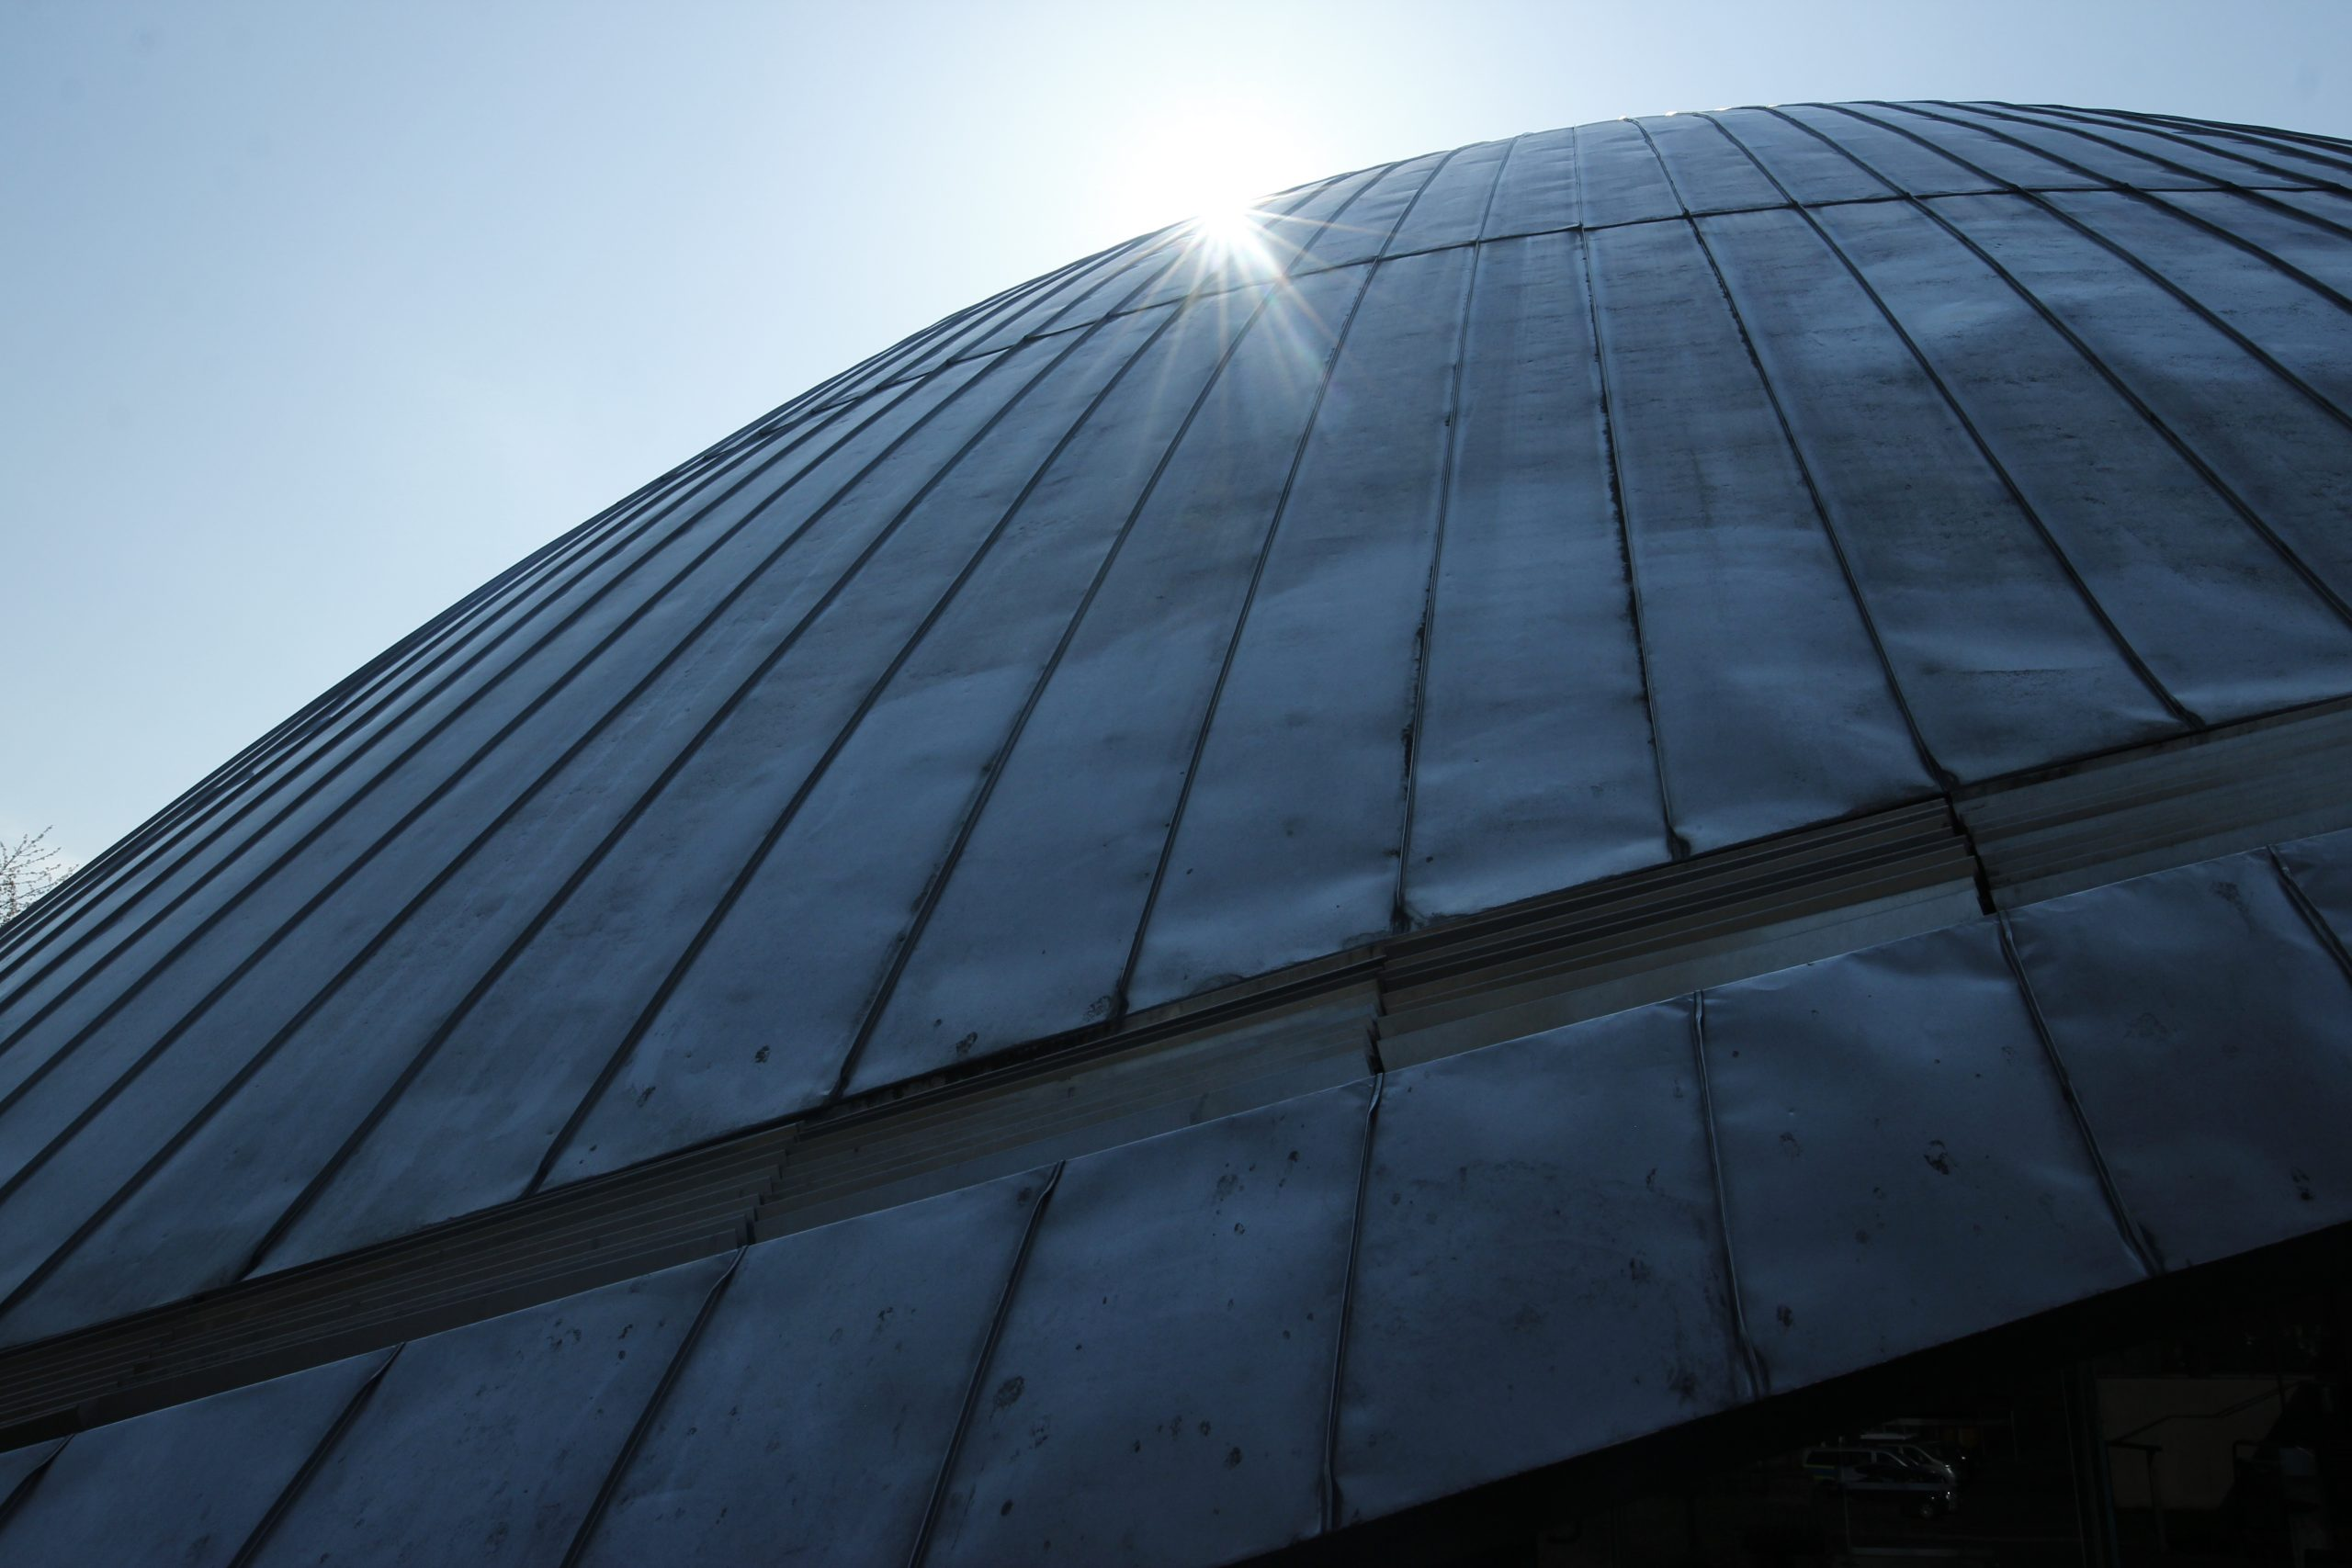 Detailed view of the dome of the Zeiss Planetarium Bochum.